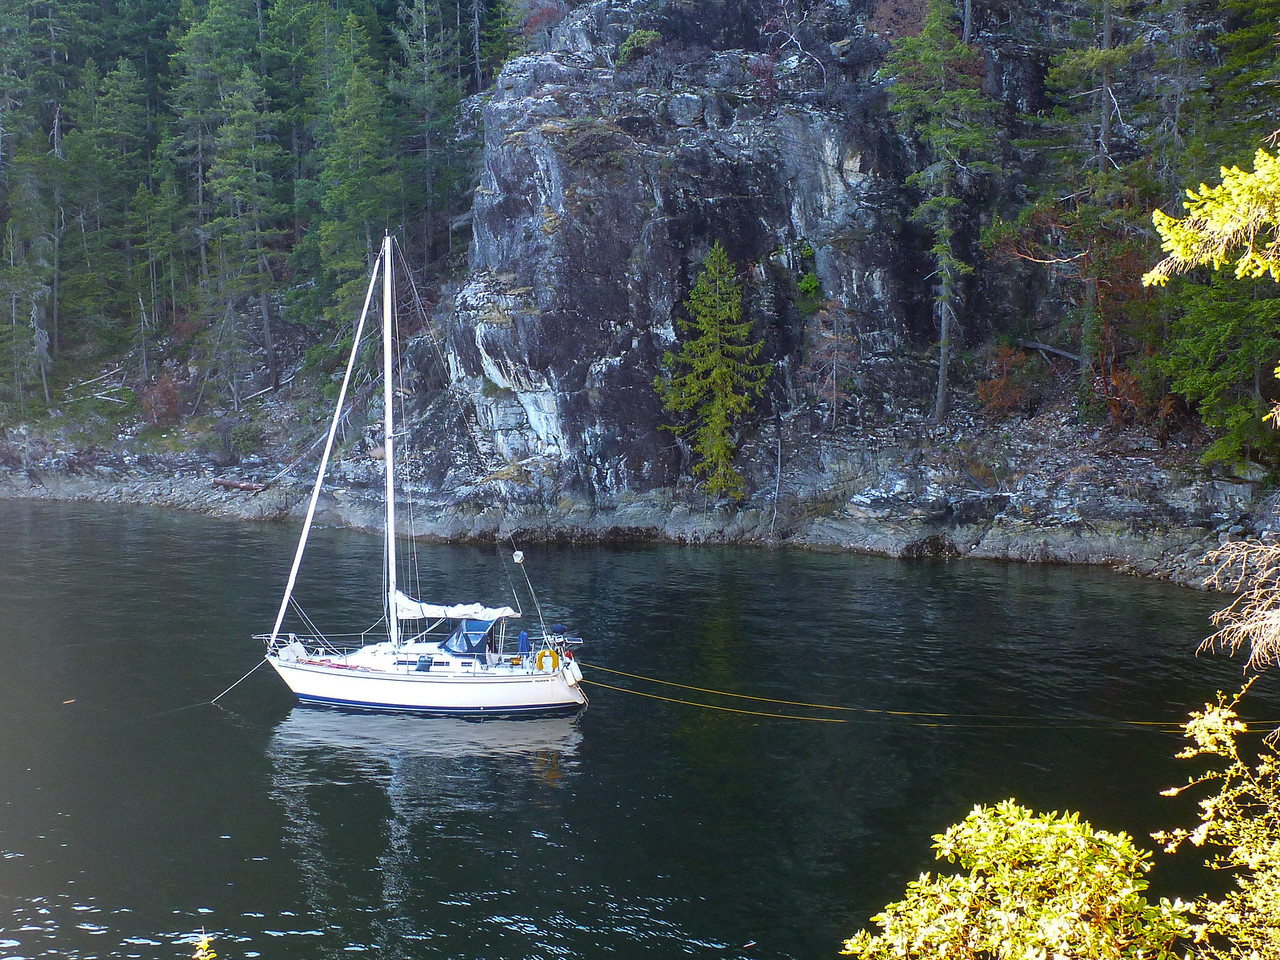 Anchorage in Teakerne Arm.  Surrounded by cliffs in very deep water!